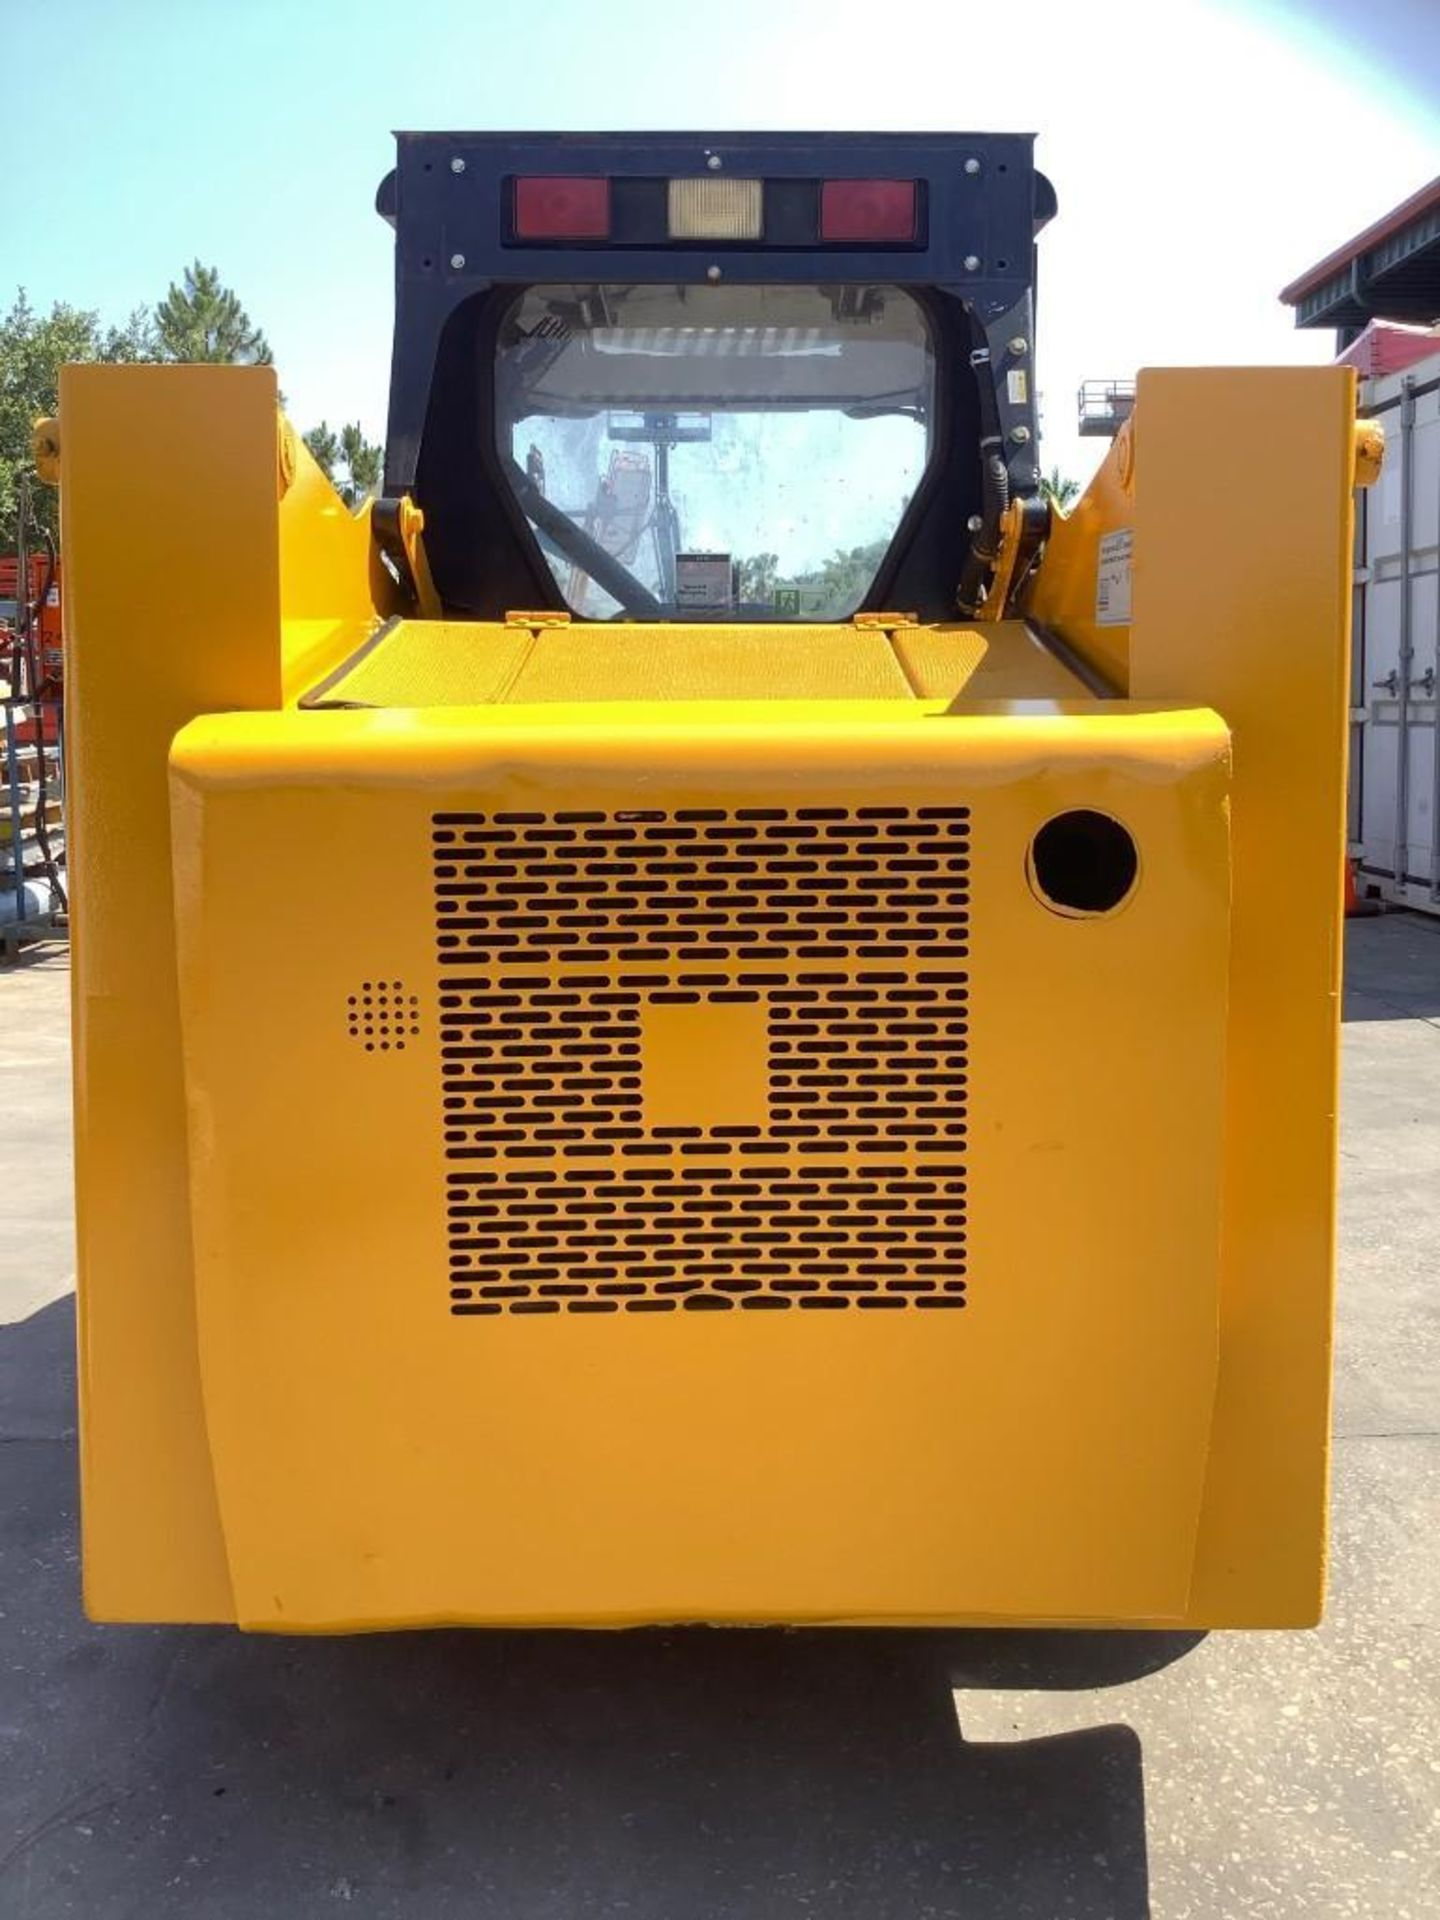 JOHN DEERE SKIDSTEER MODEL 315, DIESEL, GRAPPLE ATTACHMENT, SOLID TIRES, AUX HYDRAULIC, ENCLOSED CAB - Image 5 of 15